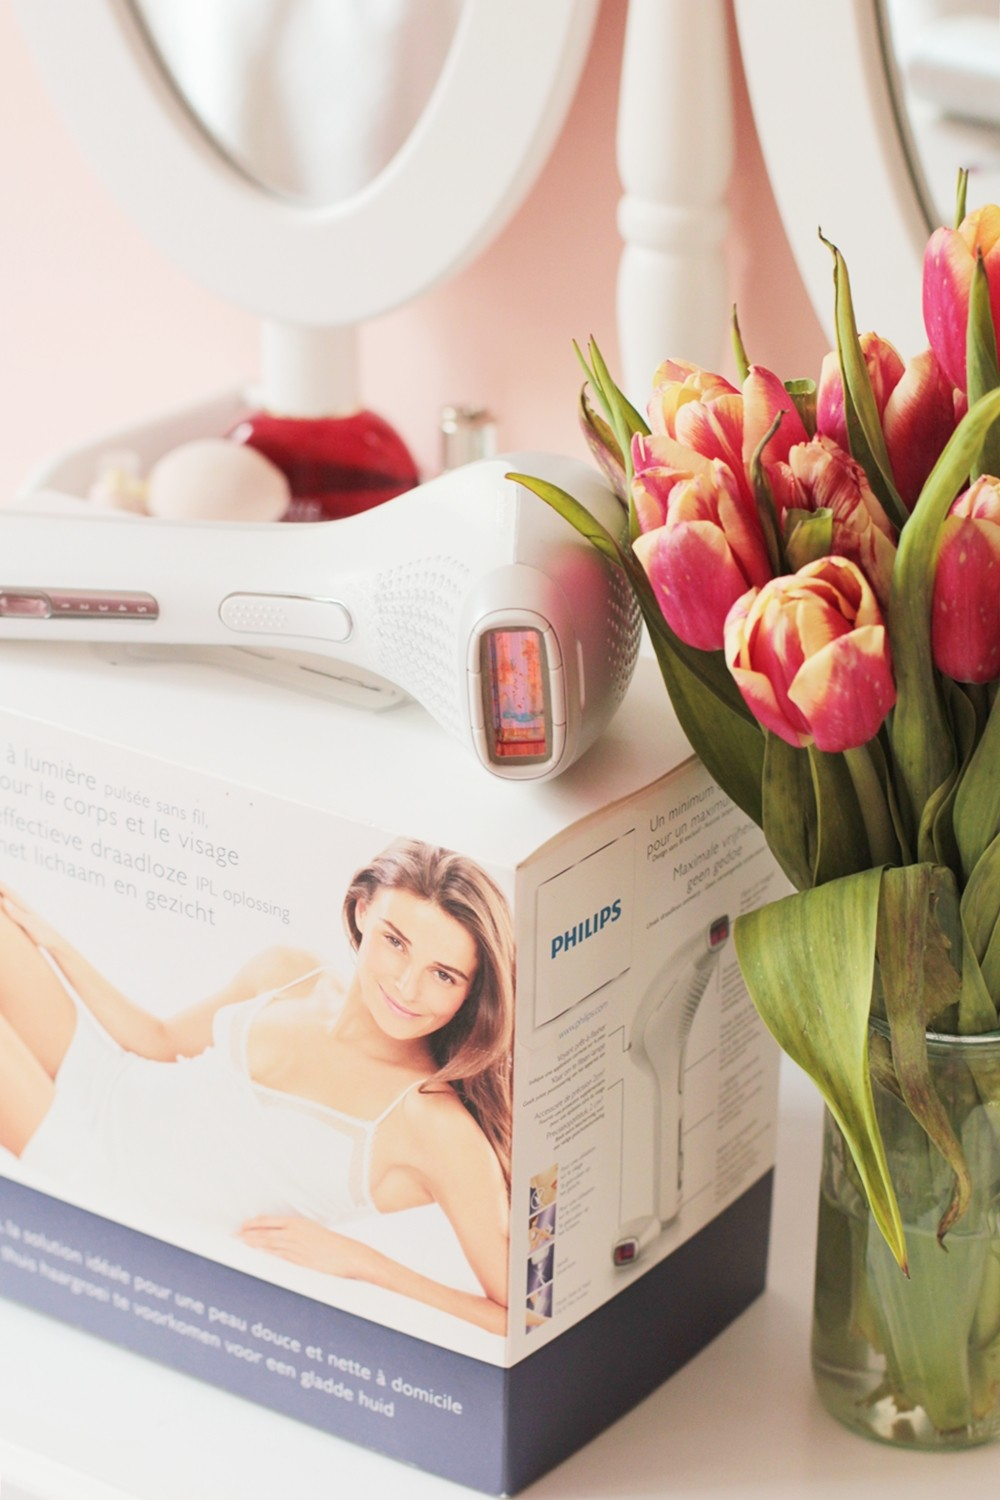 philips lumea precision plus recension